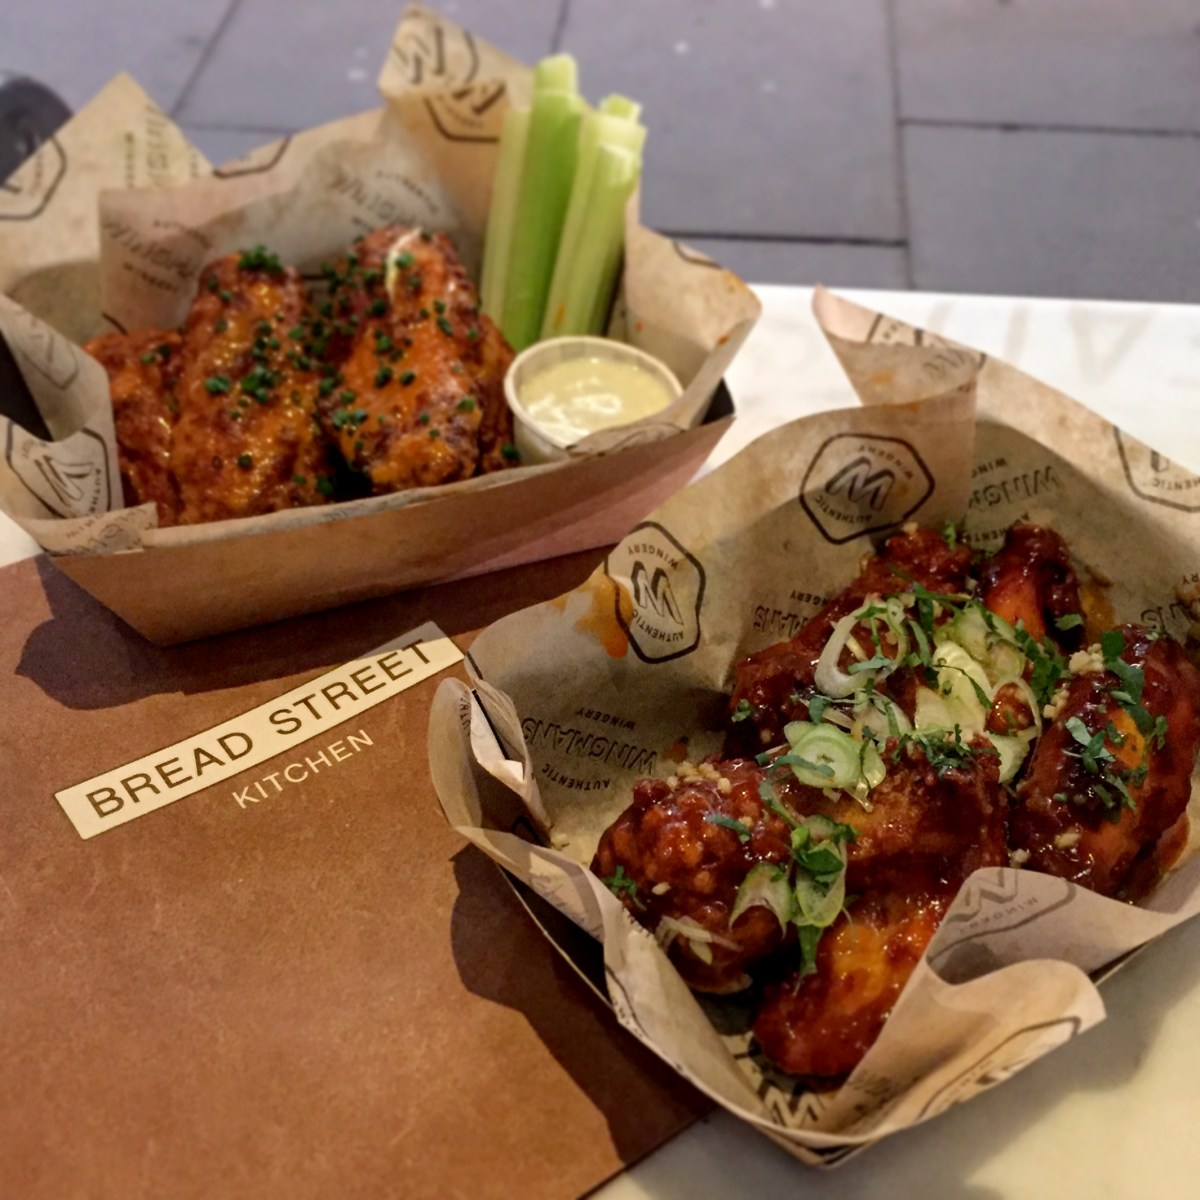 Bread Street Gives You Wings | Wingmans Bread St. Bar Sessions, Bread Street Kitchen, One New Change, London EC4M 9AJ